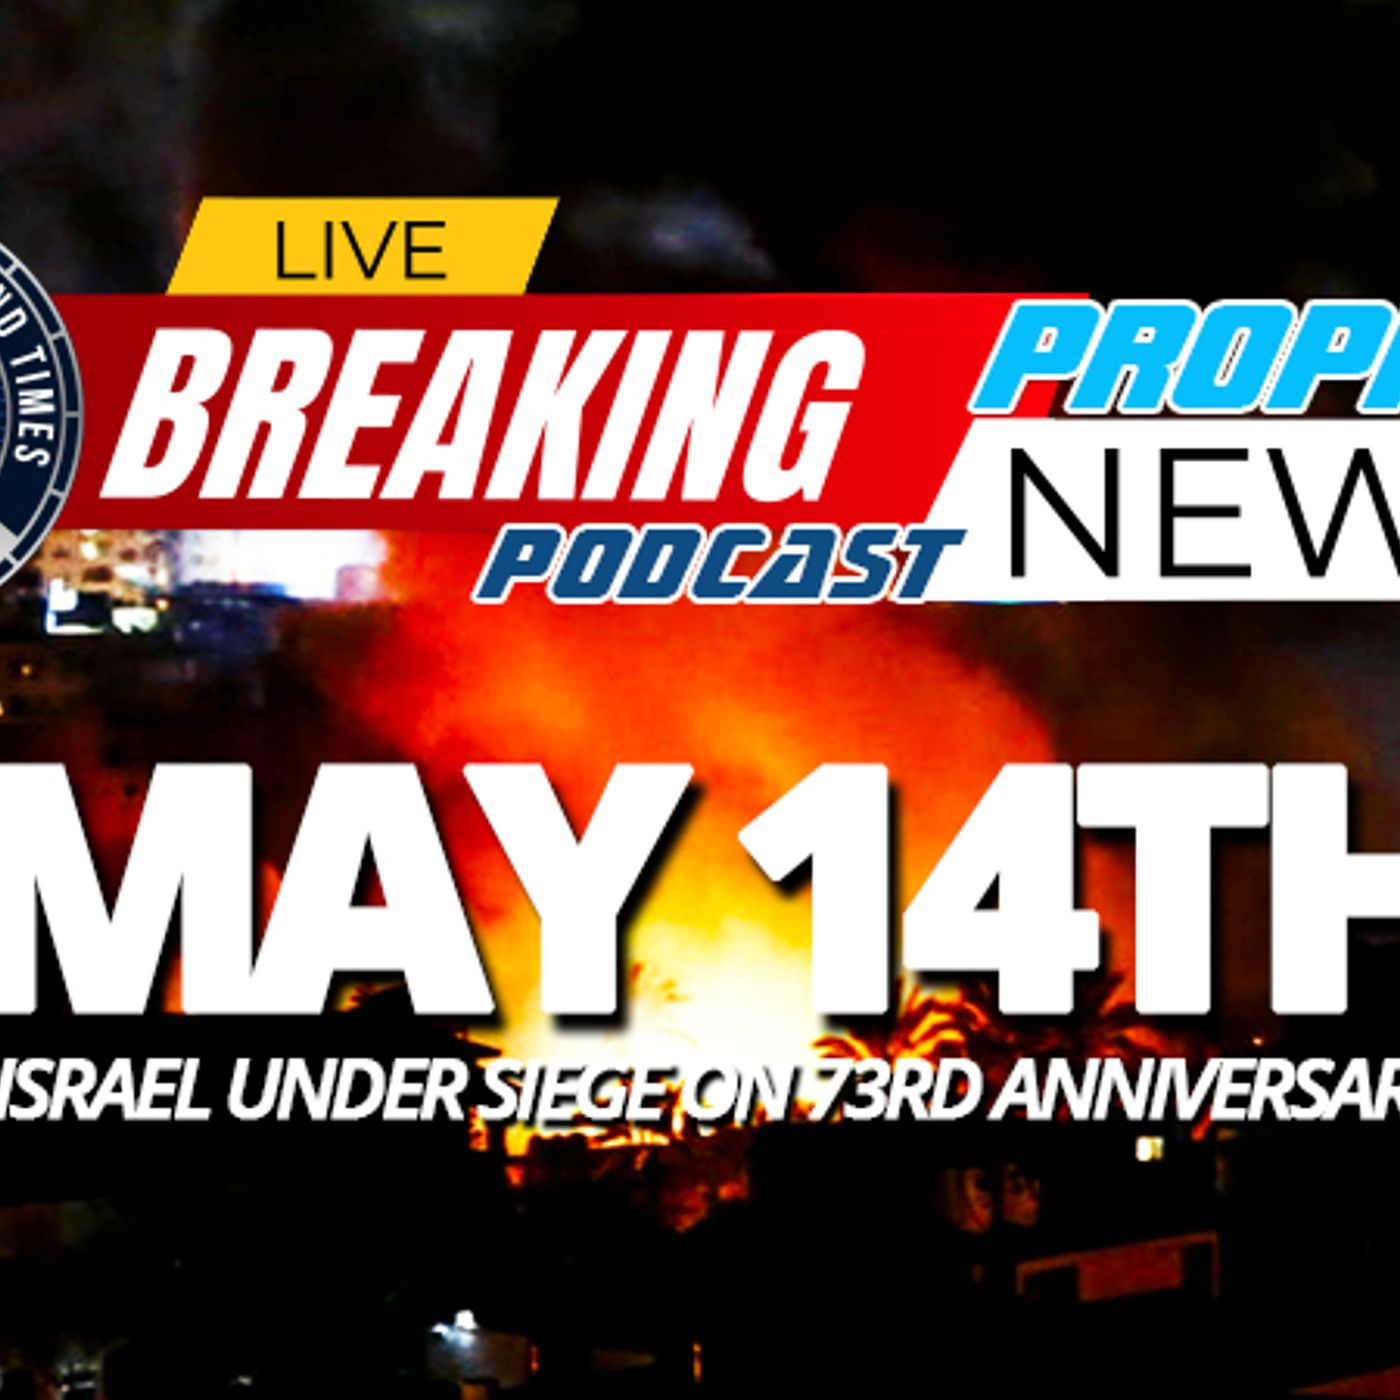 NTEB PROPHECY NEWS PODCAST: As Regathered Israel Turns 73 Today, Hamas Rockets Are Falling On The Jews With IDF Pounding The Gaza Strip